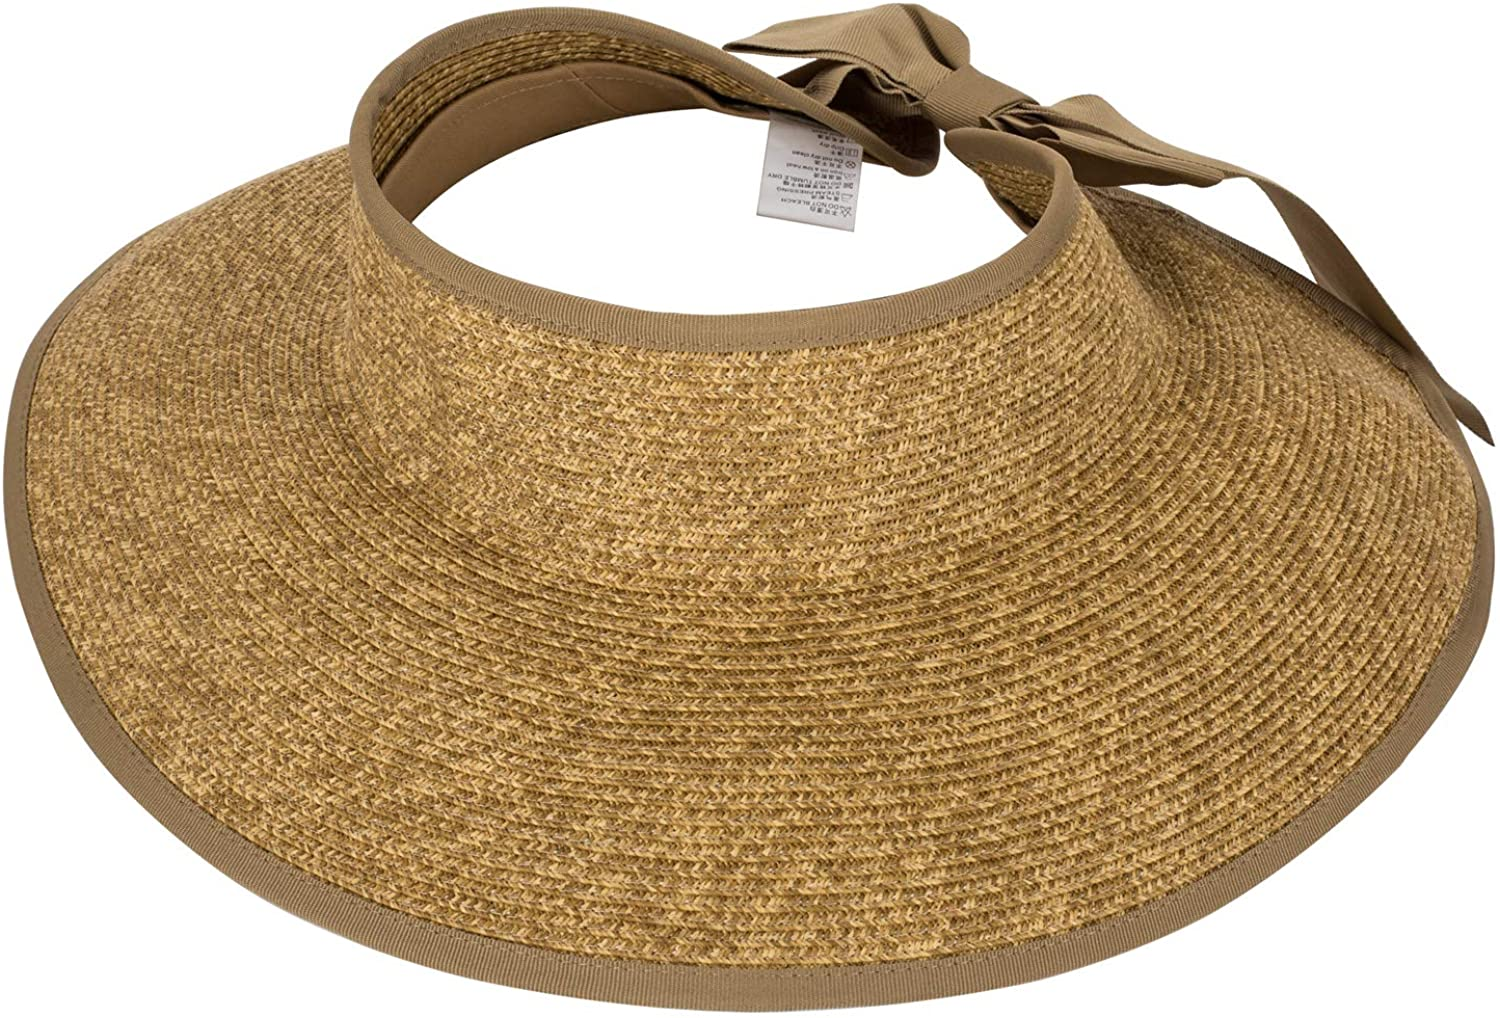 """Open Straw Hat Foldable, Sun Visor with Bow for Women, 4.2"""" Wide Brim Hat Packable, UV UPF 50+,Travel Beach Hat for Summer"""